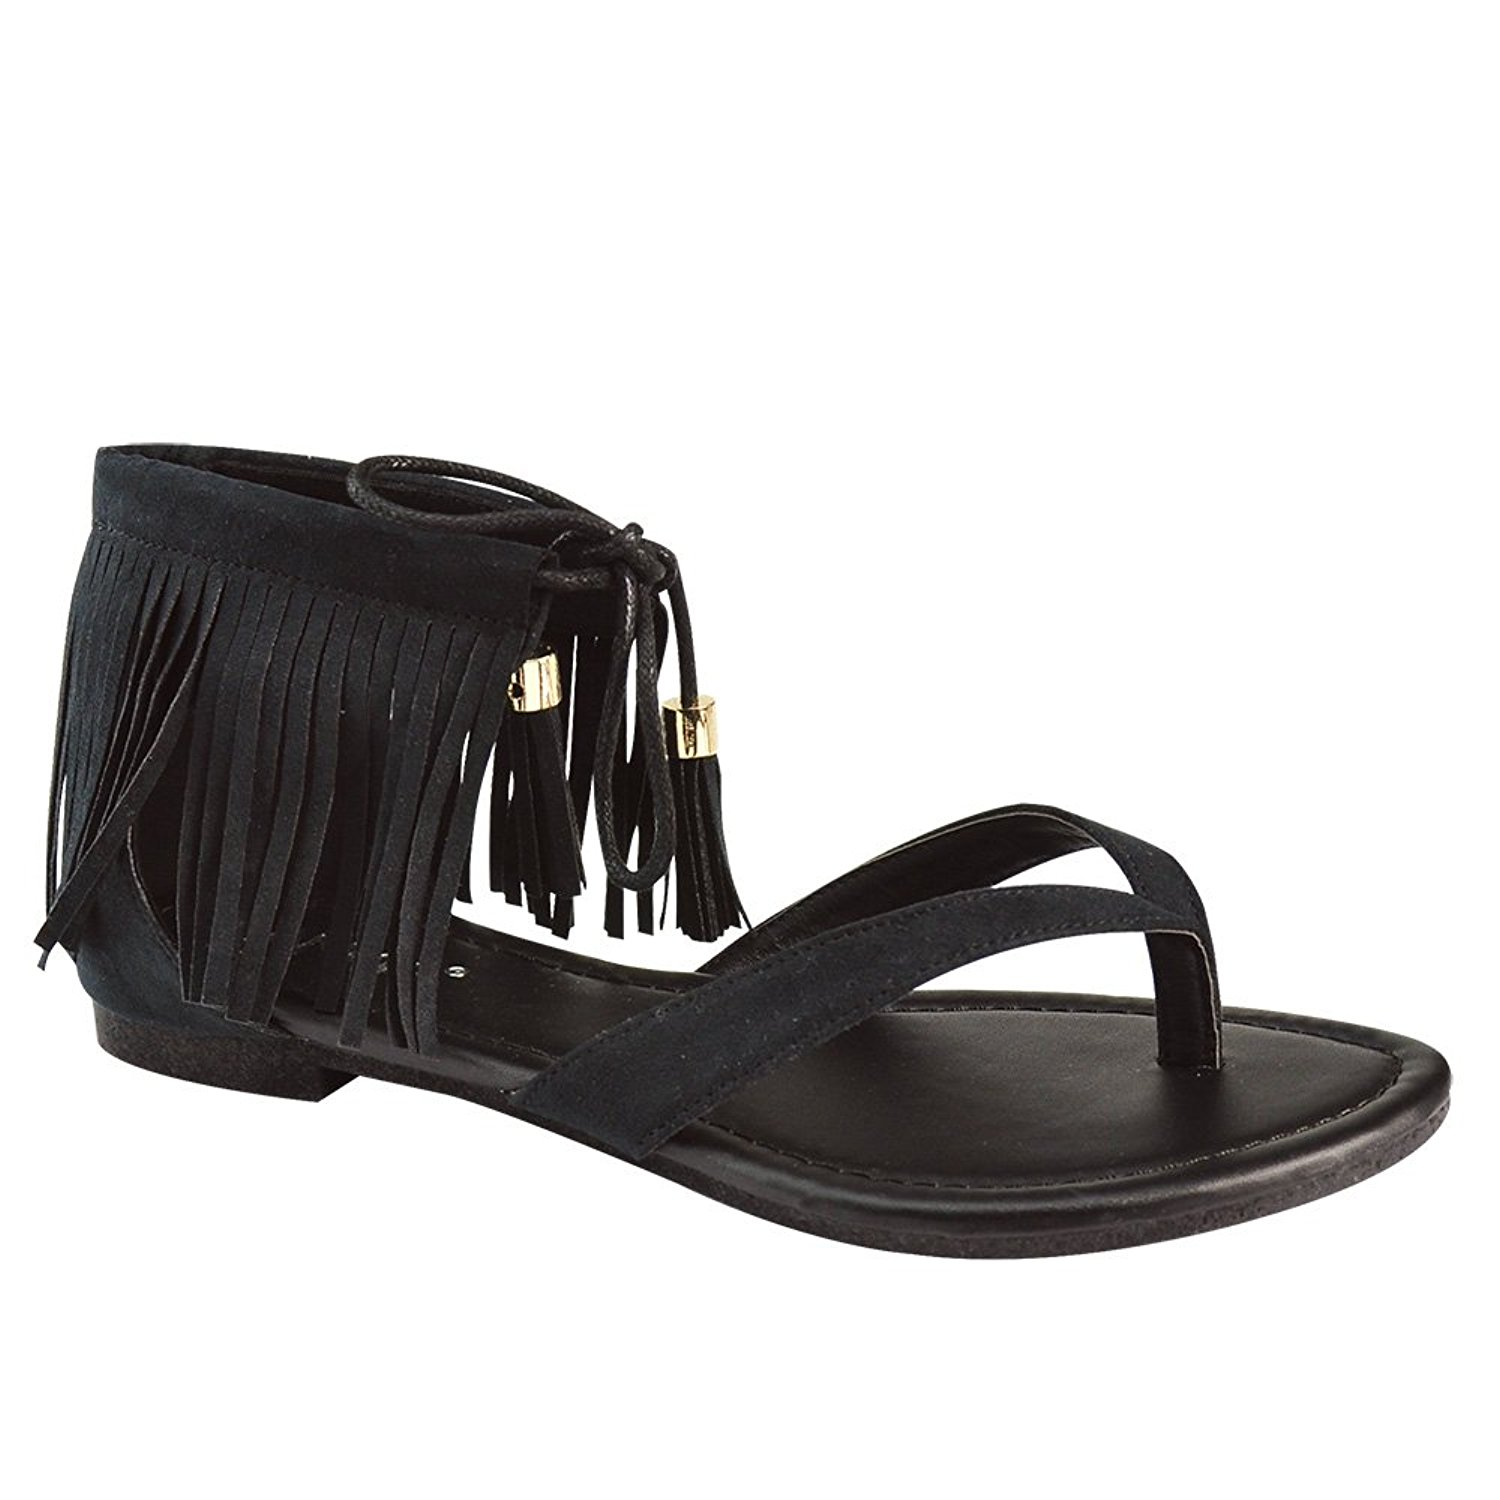 Anna Home Collection Anna Ruffle-7 Women's Fringe Lace up Thong Flat Dress Sandals,Color Black, Size:7.5